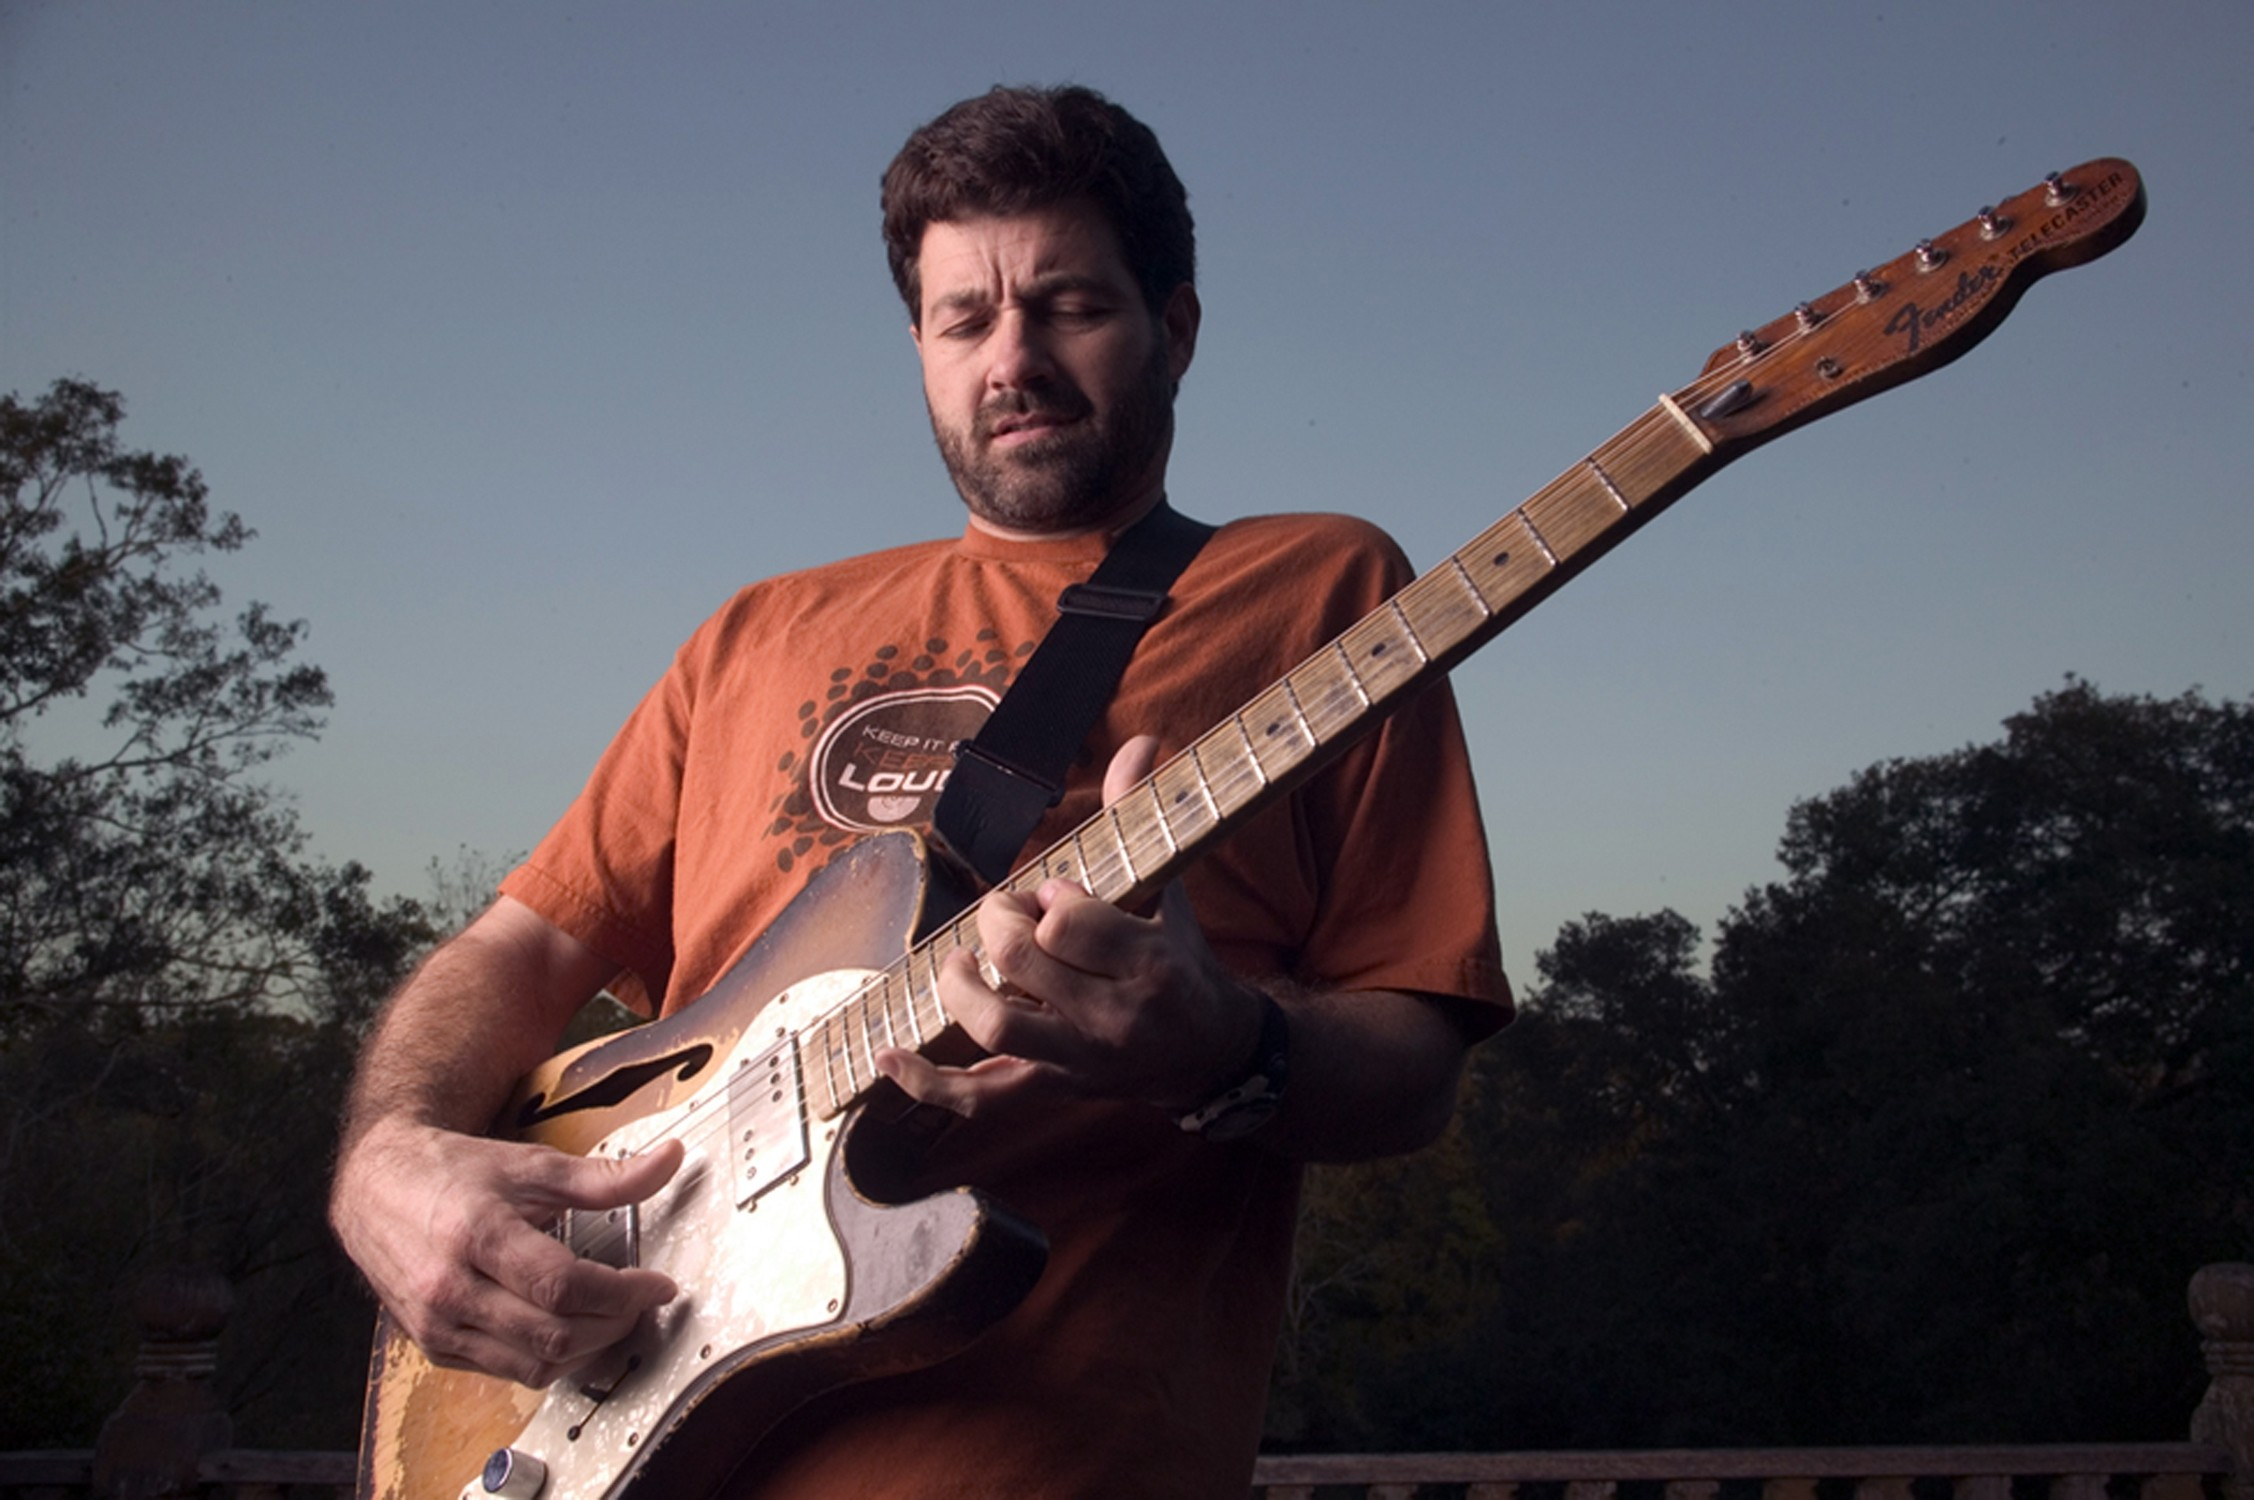 Louisiana bluesman Tab Benoit, 45, saw his profile grow after performing at the 2008 Democratic and Republican national conventions and testifying before Congress and the 